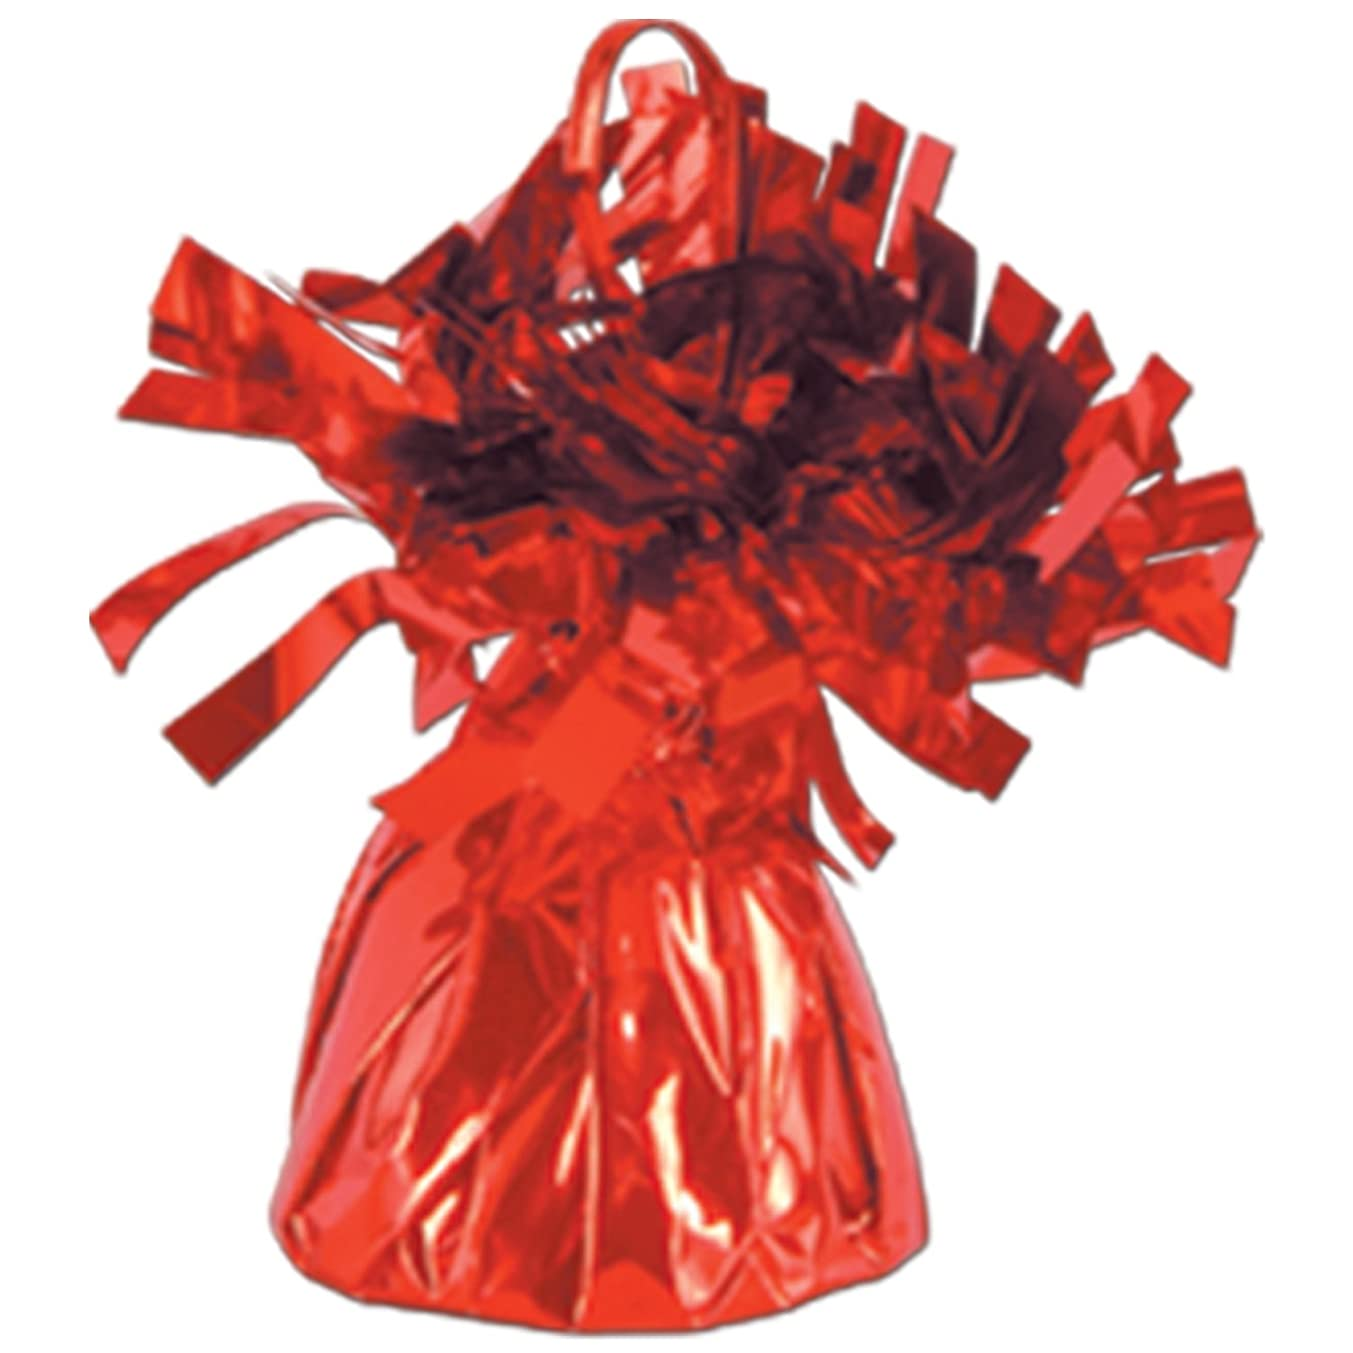 Beistle 50804-R Metallic Wrapped Balloon Weight Party Supplies, Red